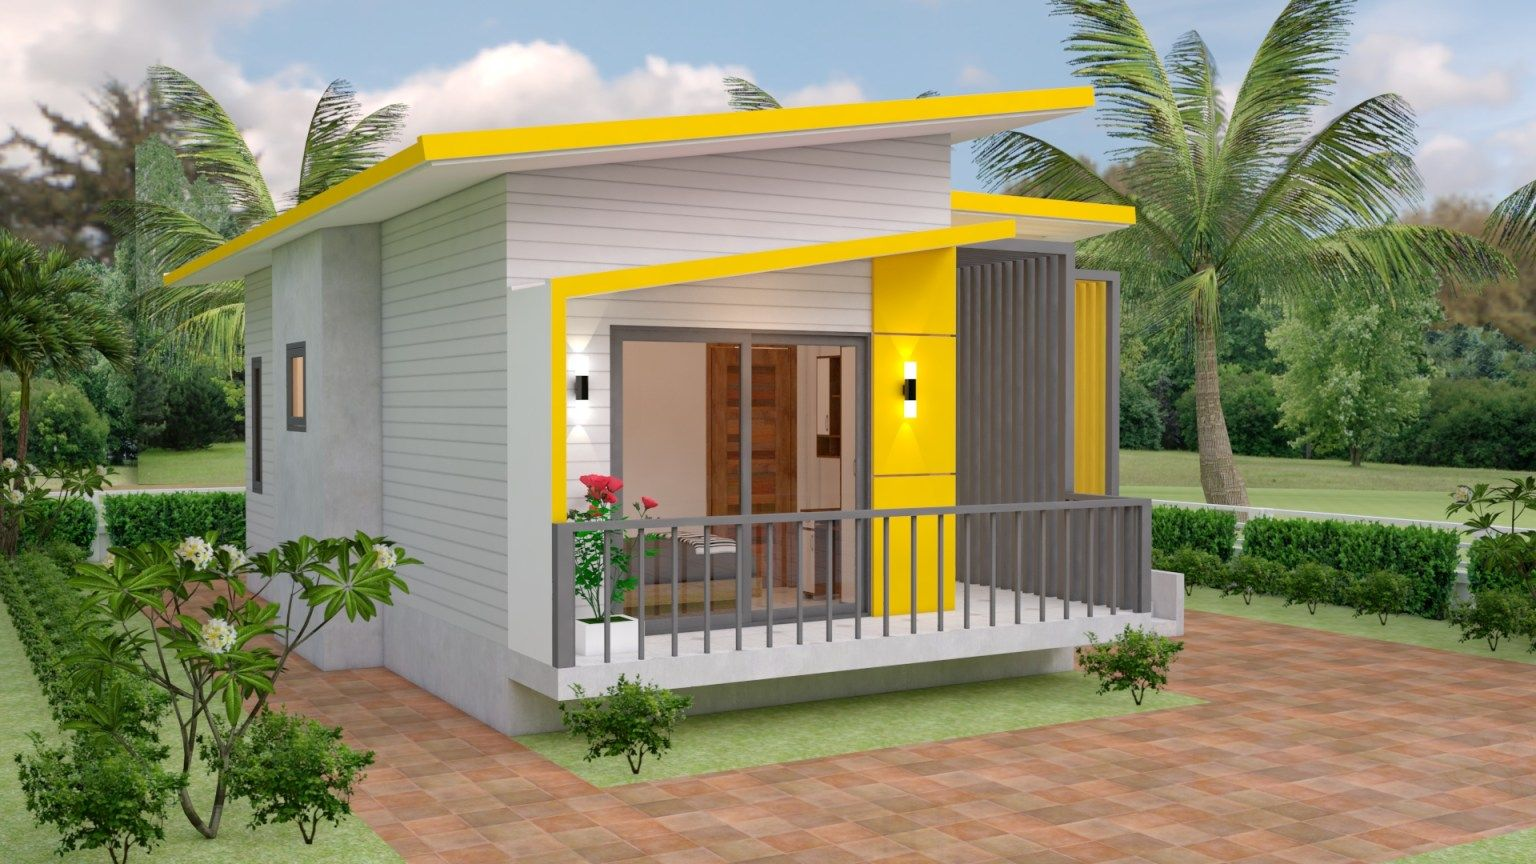 Photo of Small Modern House Design 7.5×11 Meter 25×36 Feet – Pro Home DecorZ